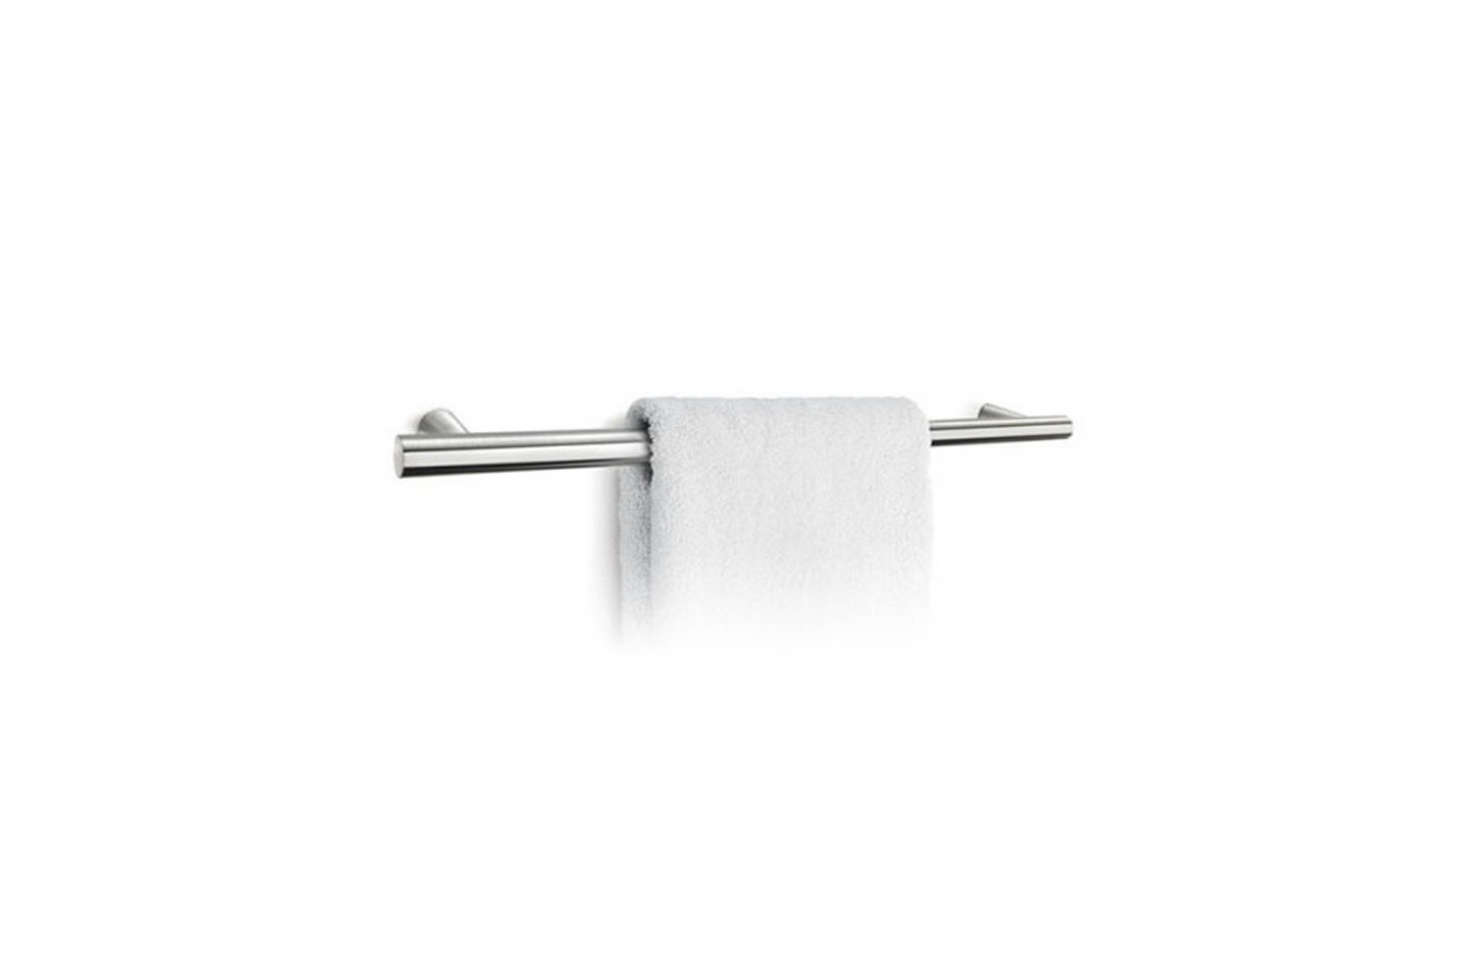 The Eva Solo Towel Rail is $3.56 at Y Lighting.